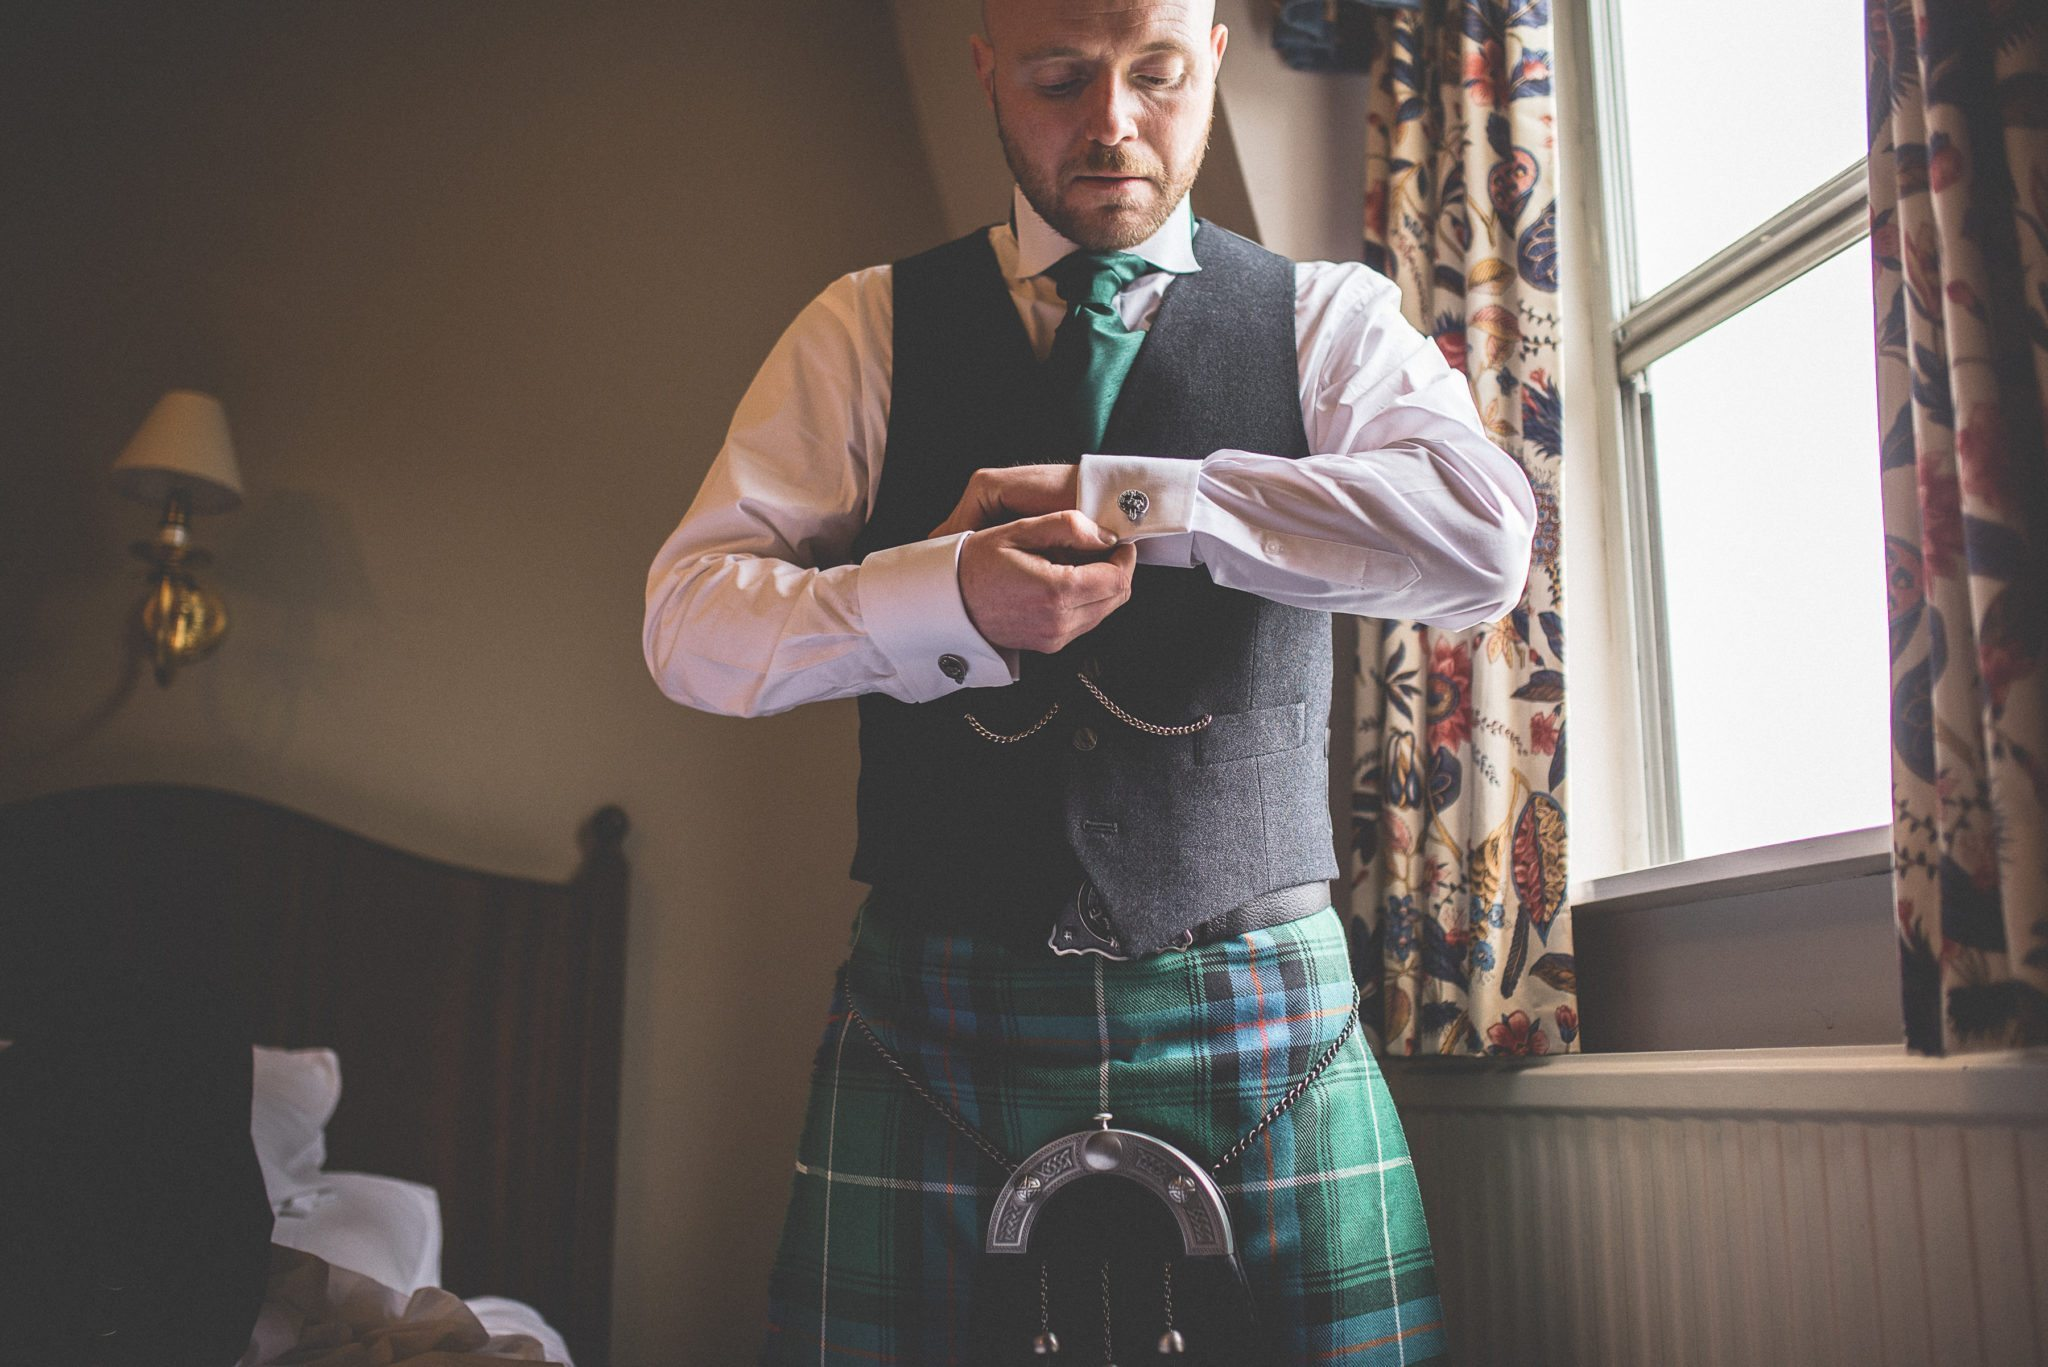 Groom Andy puts the final touches to his outfit, including green and black tartan kilt, green tie and cufflinks